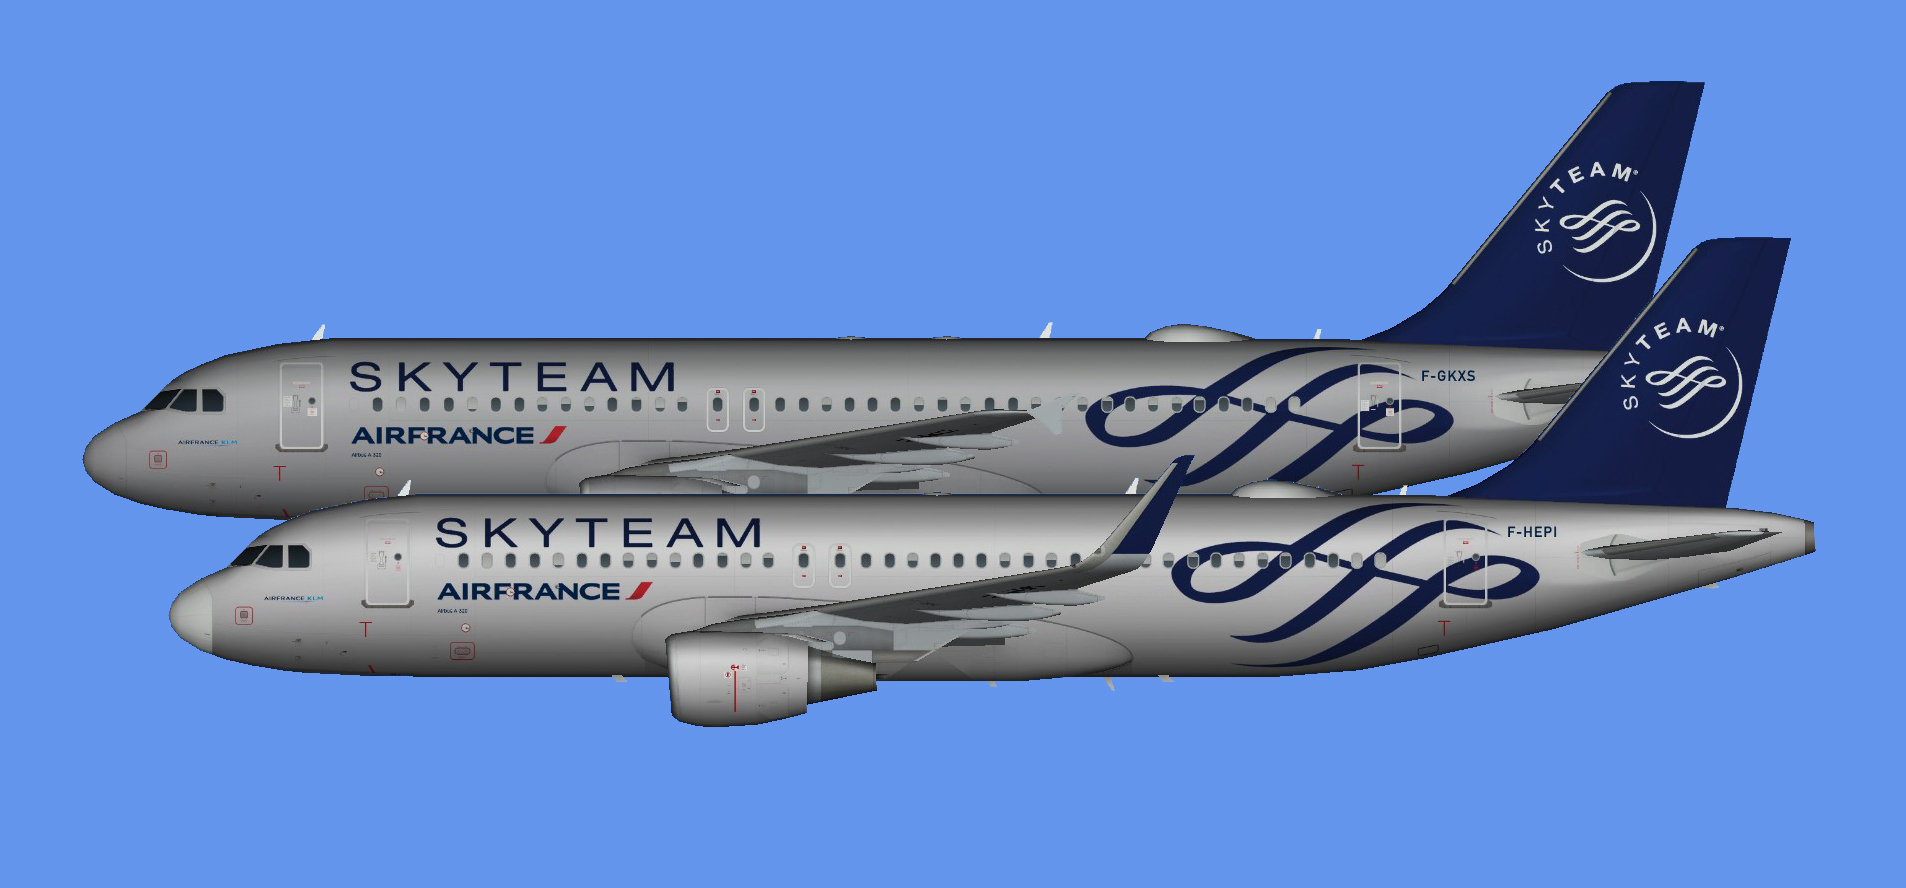 Air France Airbus A320 Skyteam